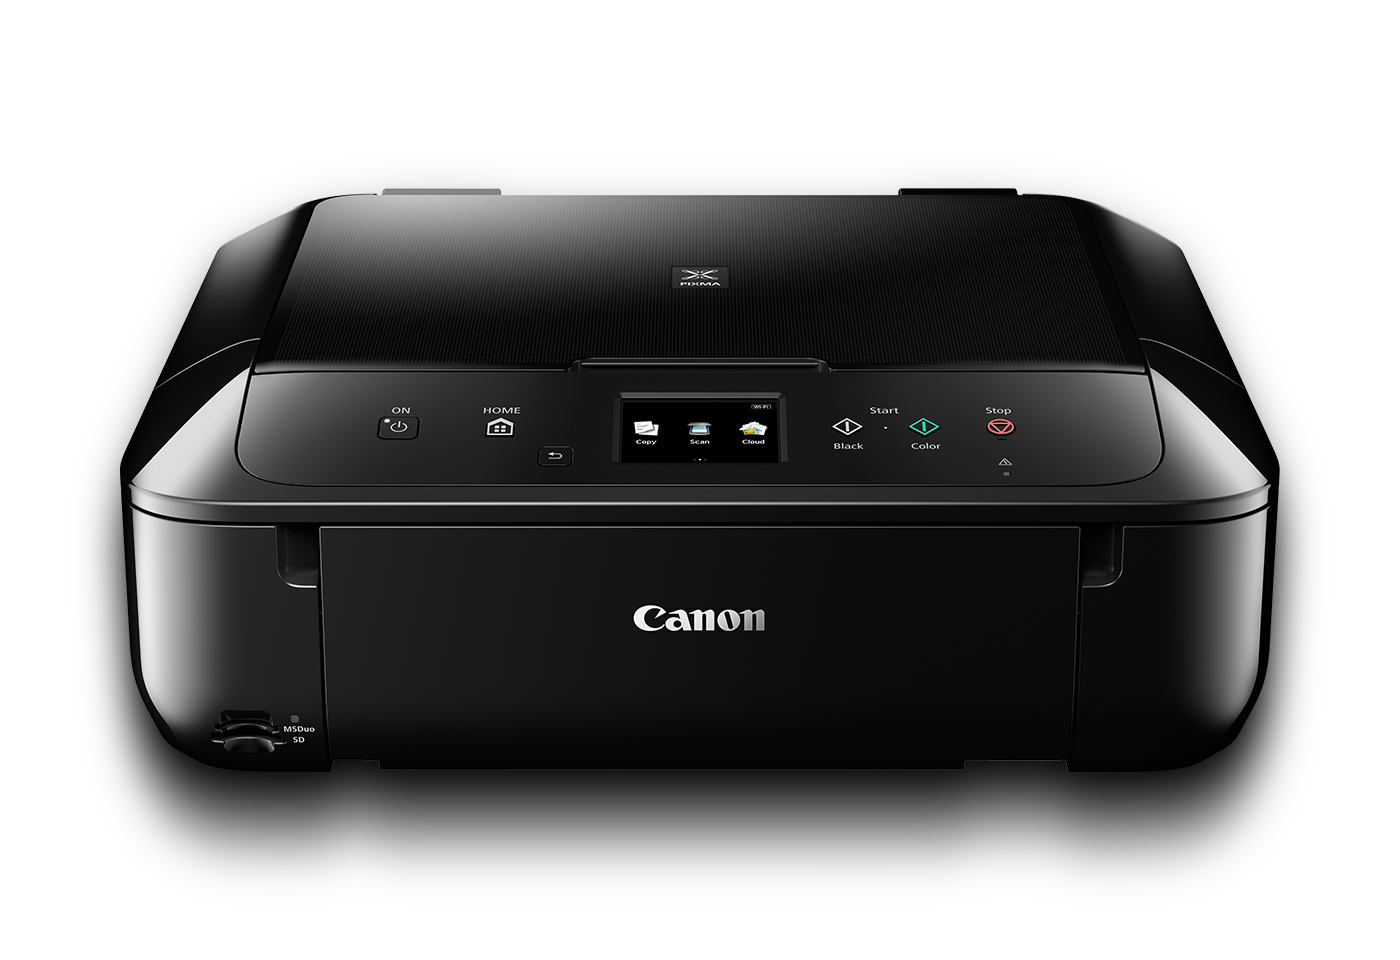 Canon PIXMA MG6860 Inkjet All-in-One printer black front